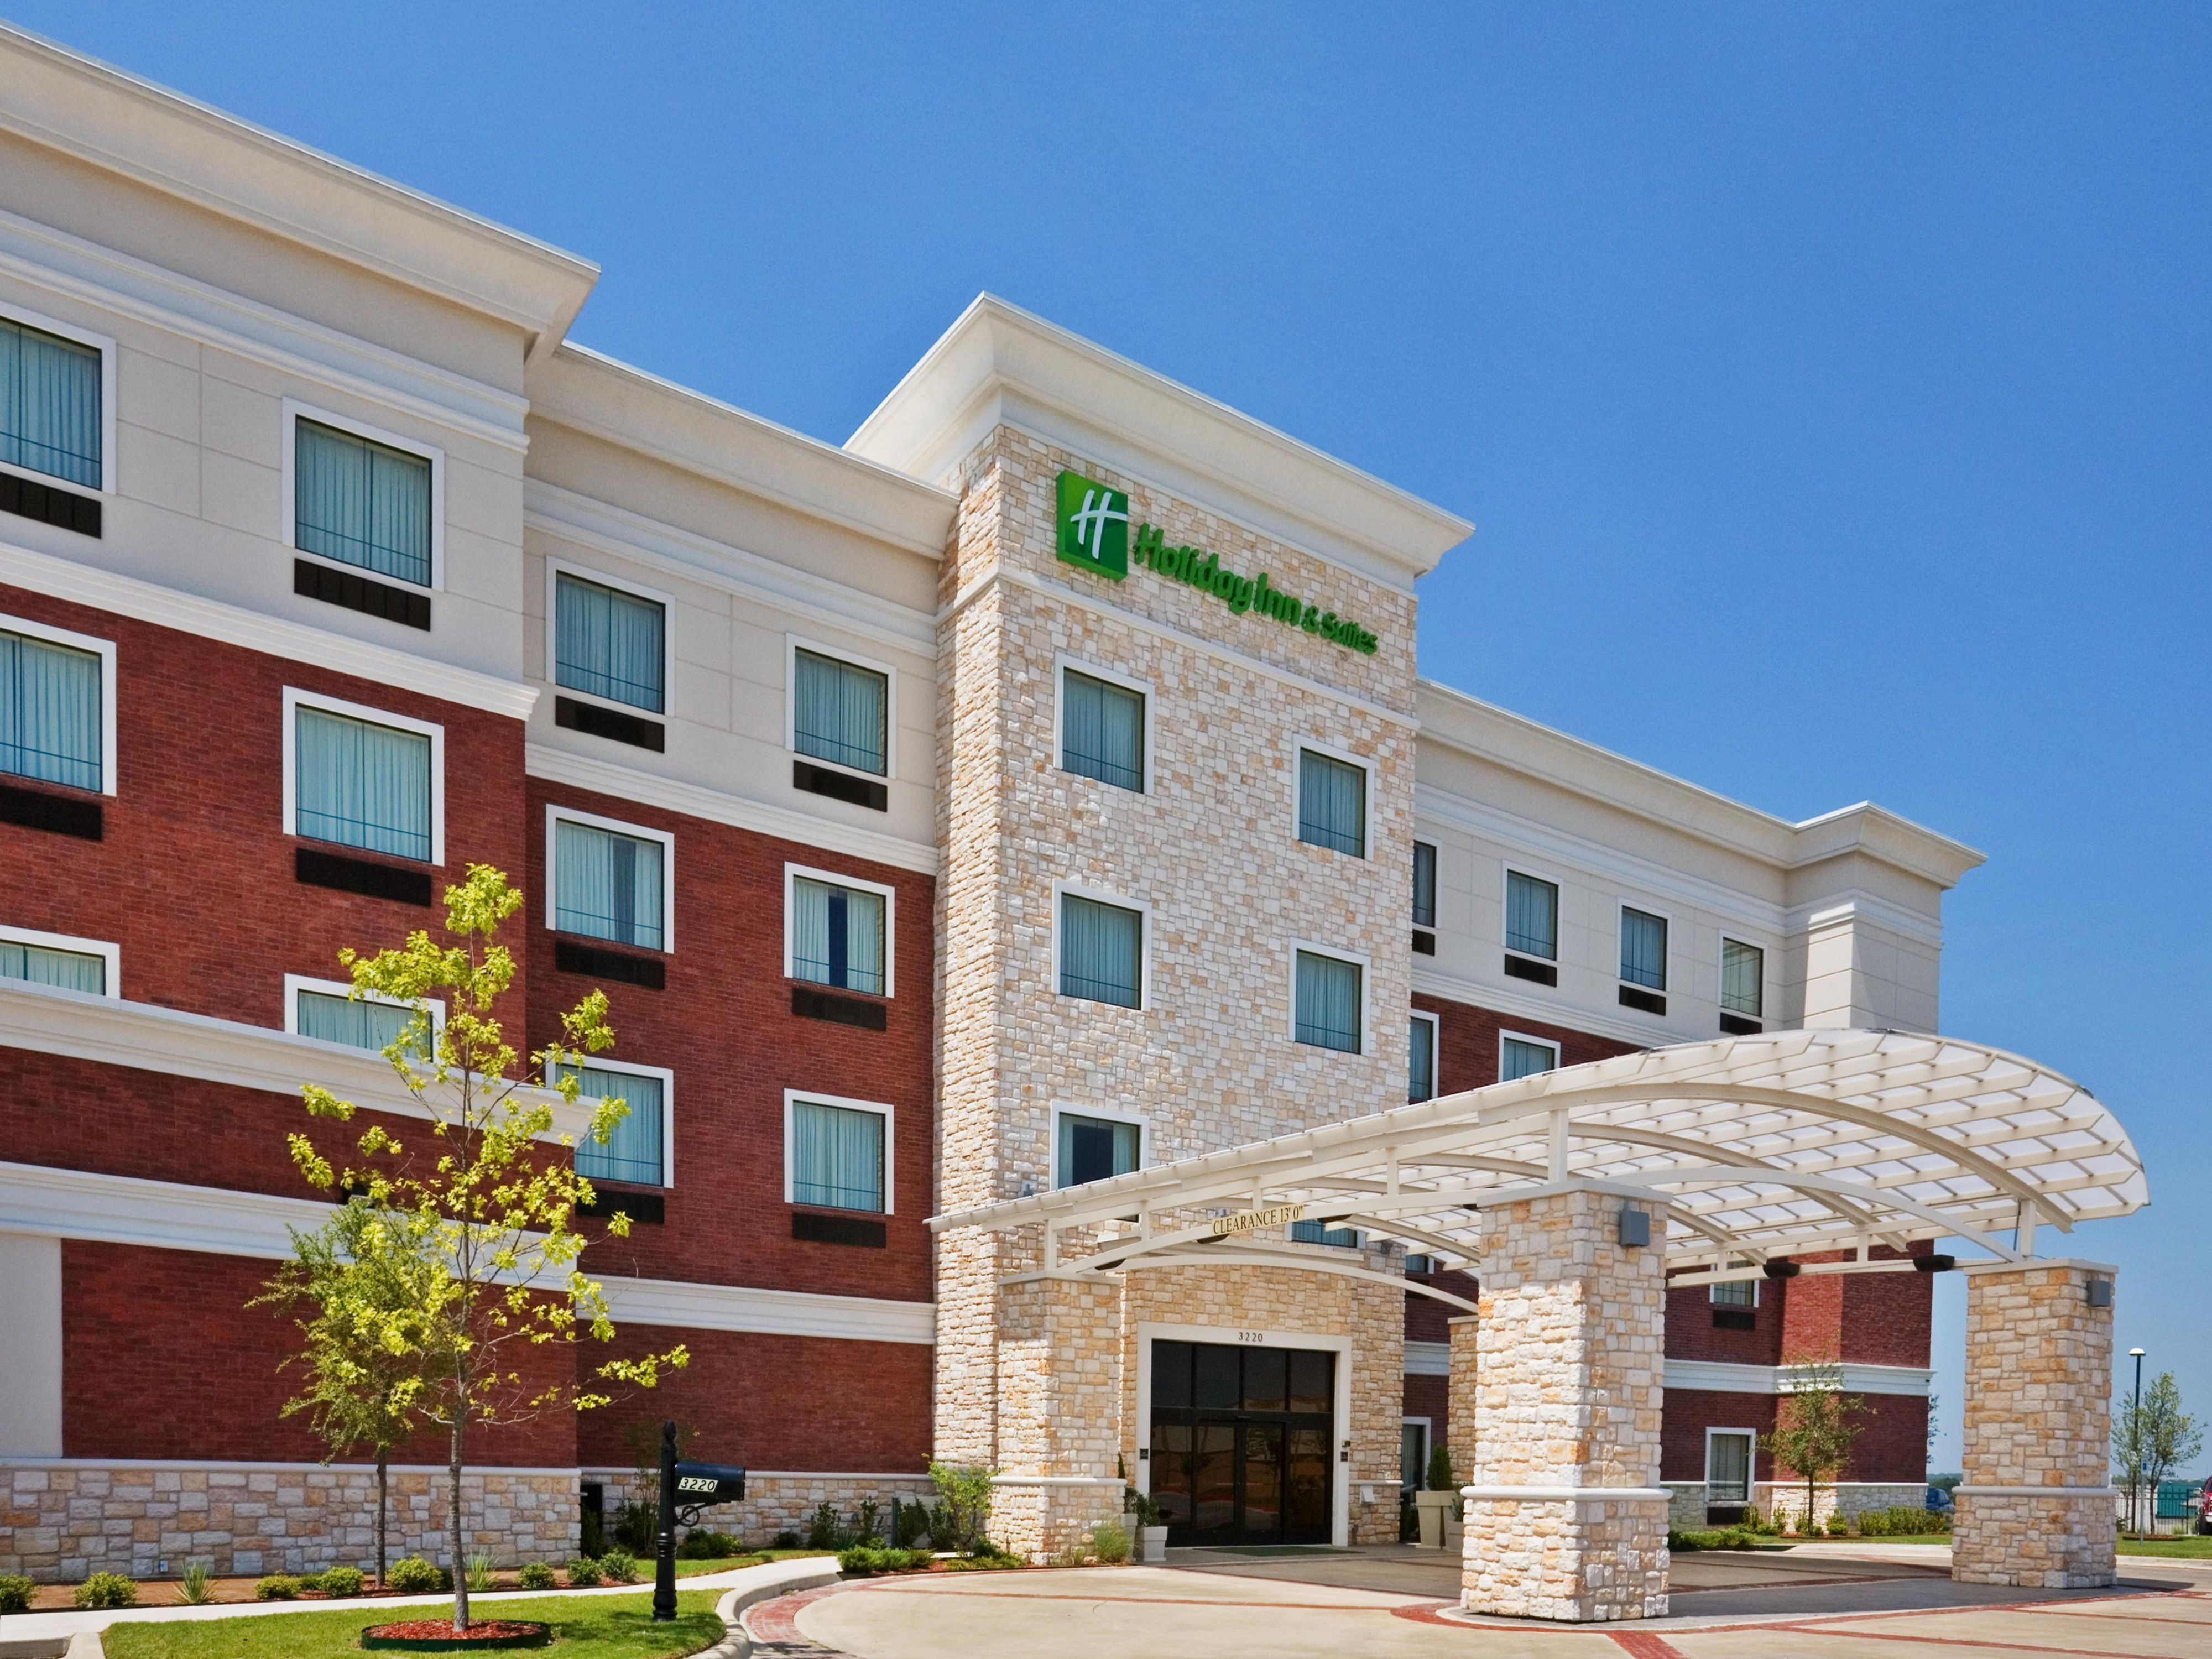 Welcome to Holiday Inn and Suites - McKinney.